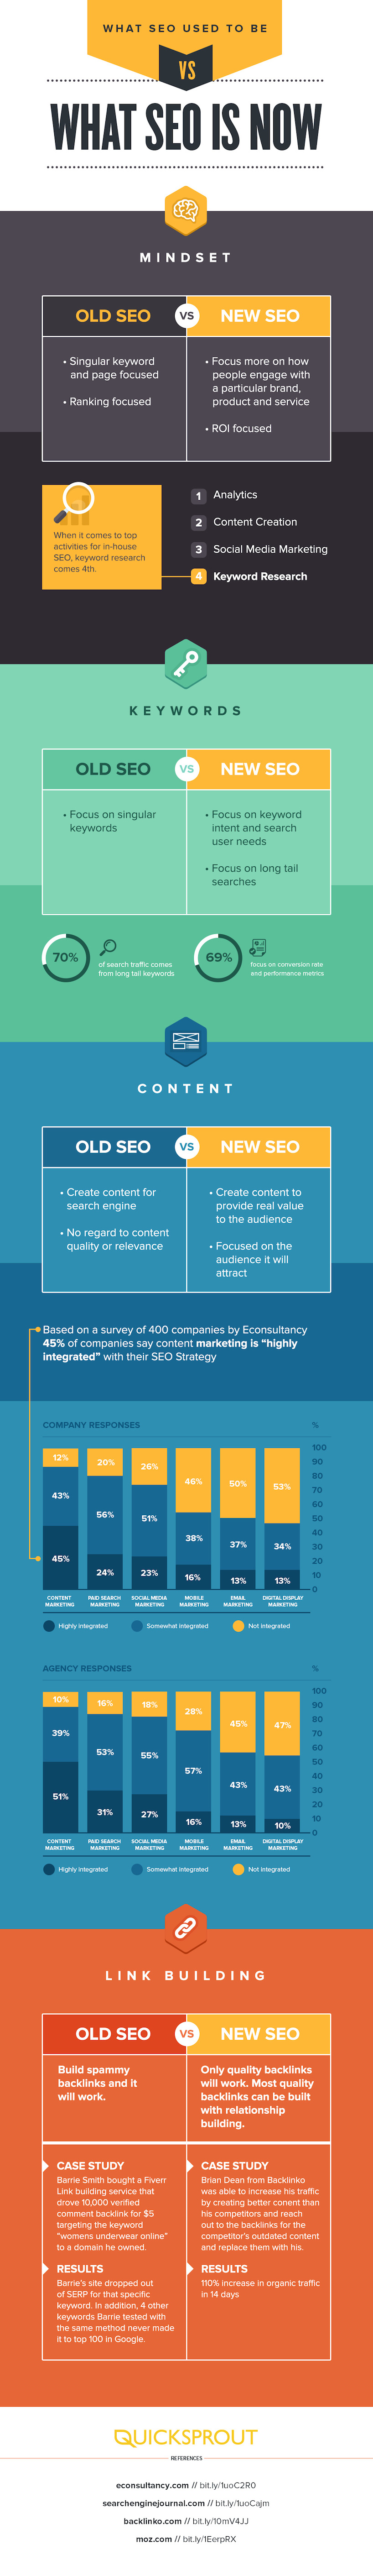 What SEO Used to Be Versus What SEO Is Now infographic